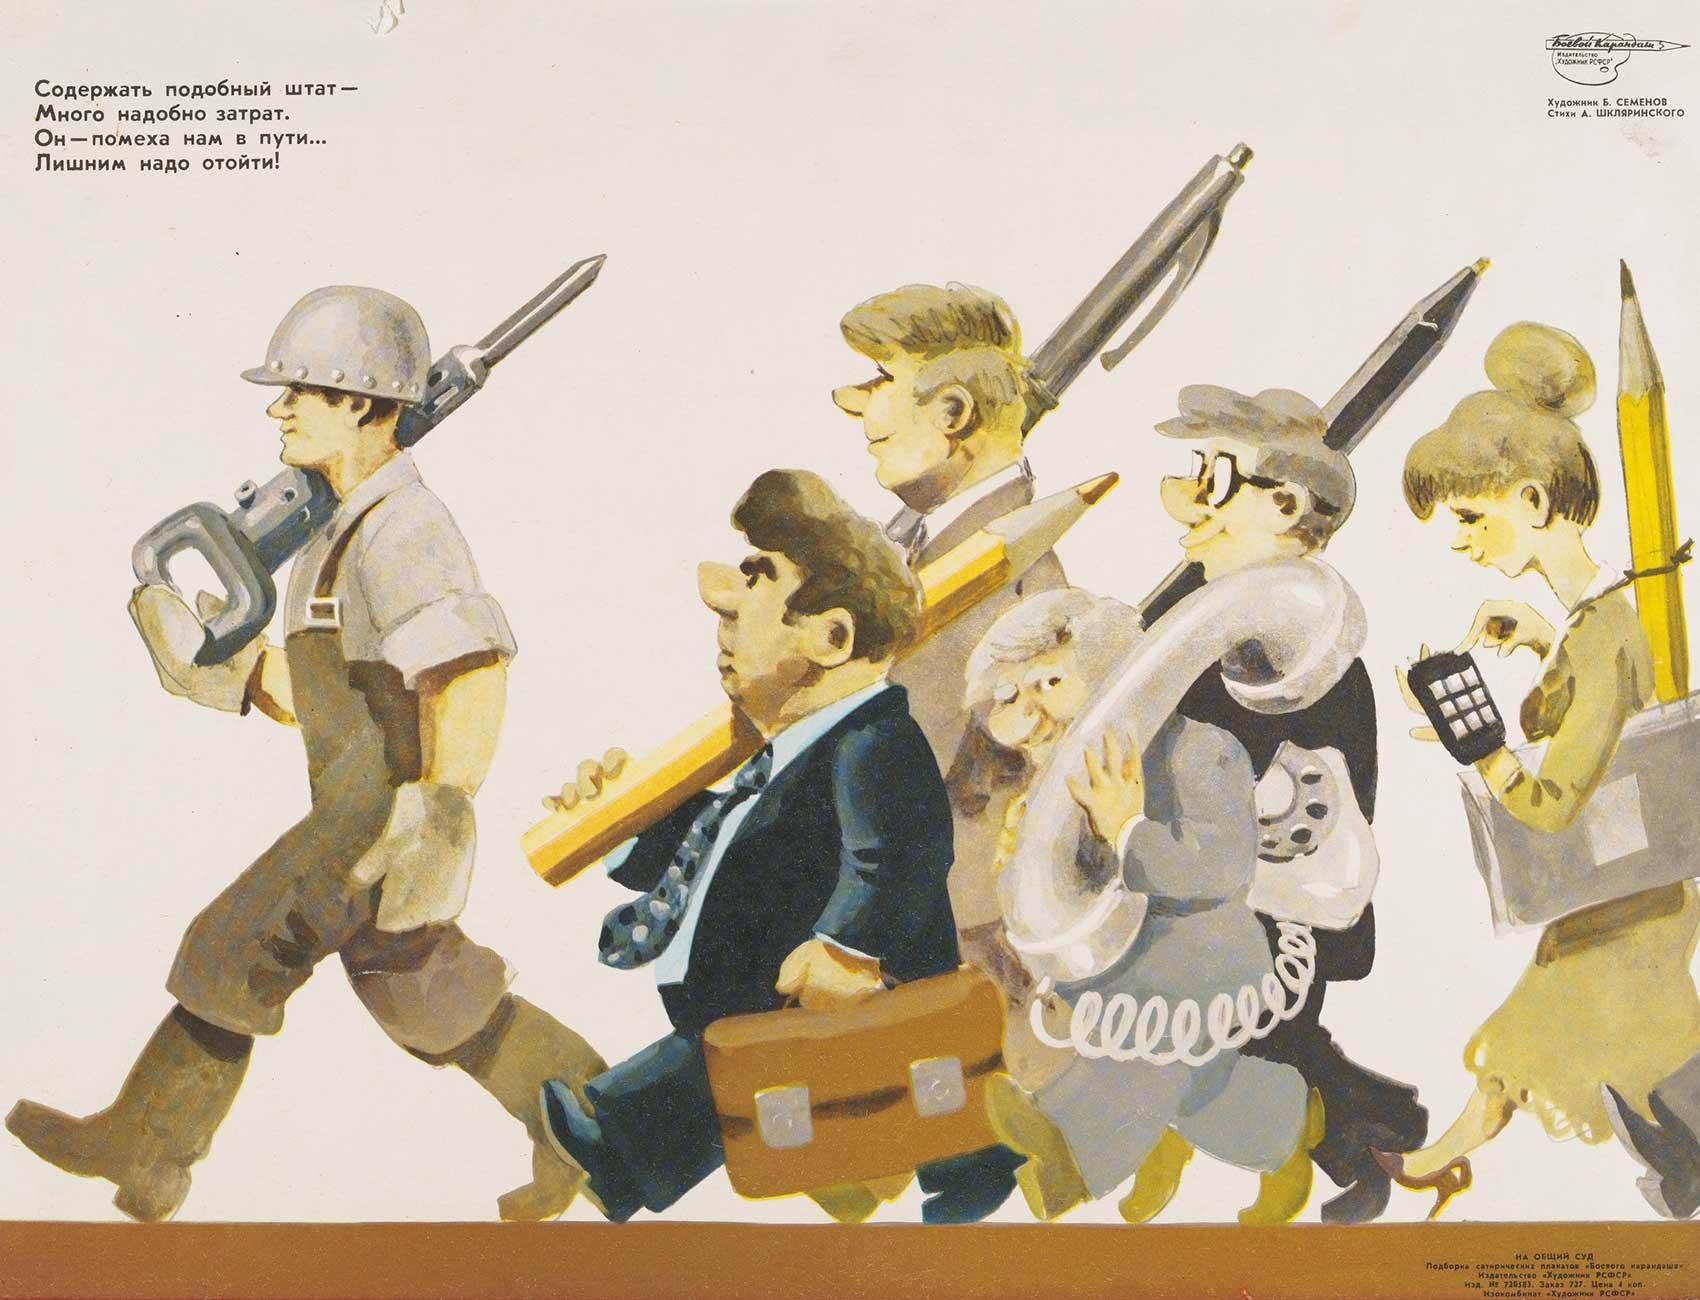 Cartoon showing an group of office workers with giant pencils and briefcases following a factory worker who carries a power tool